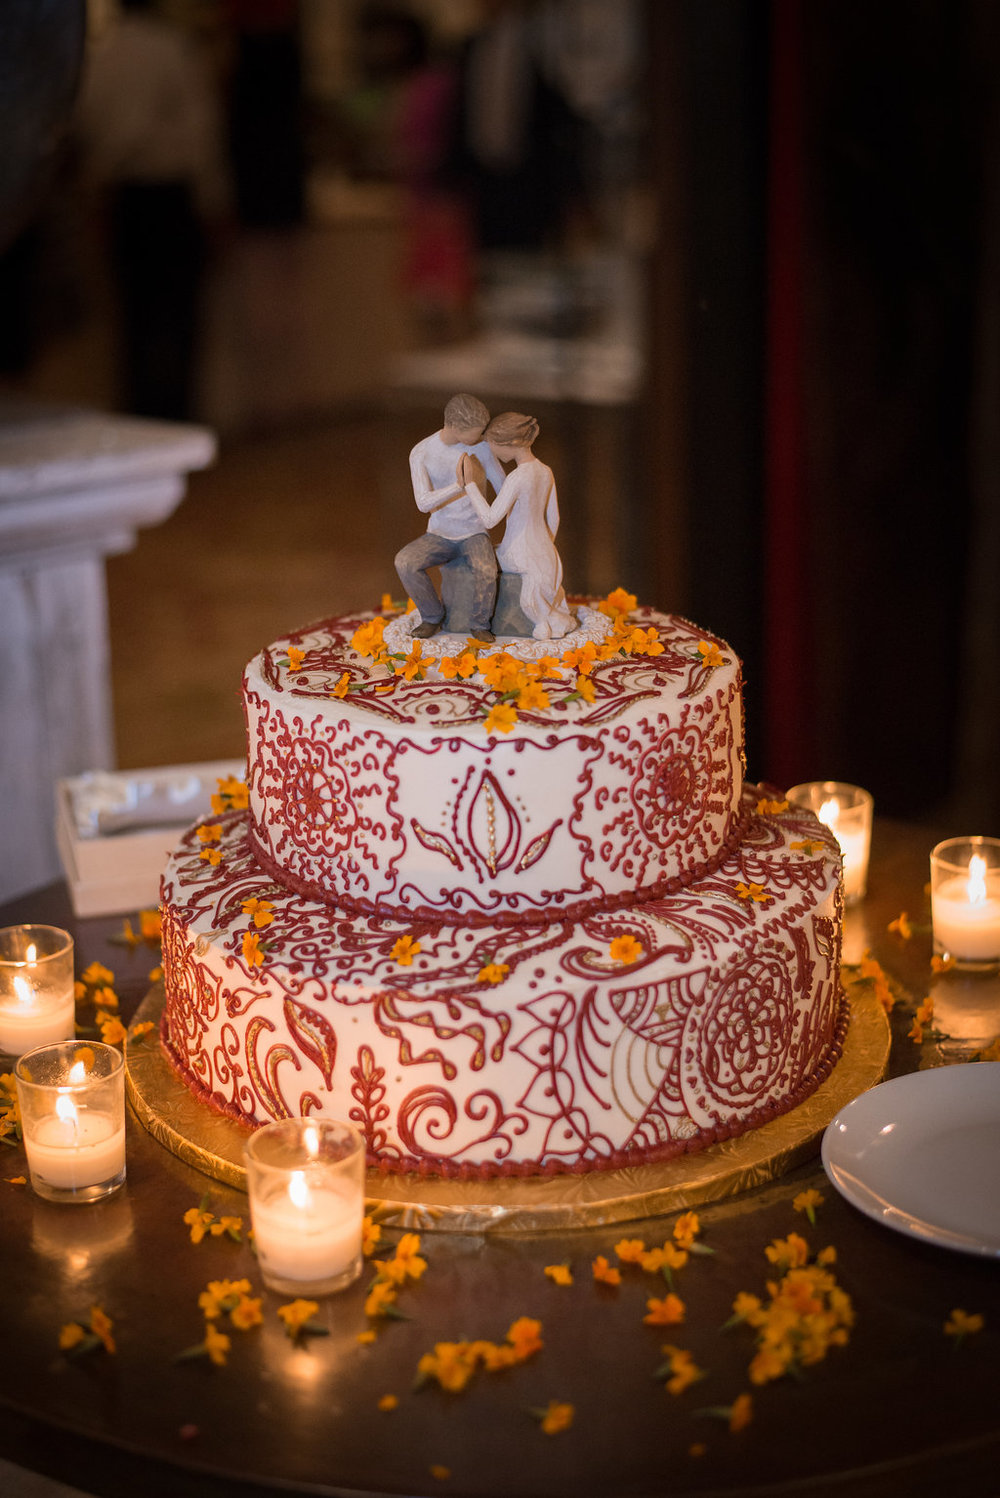 EdandMariaReceptionWeddingCake